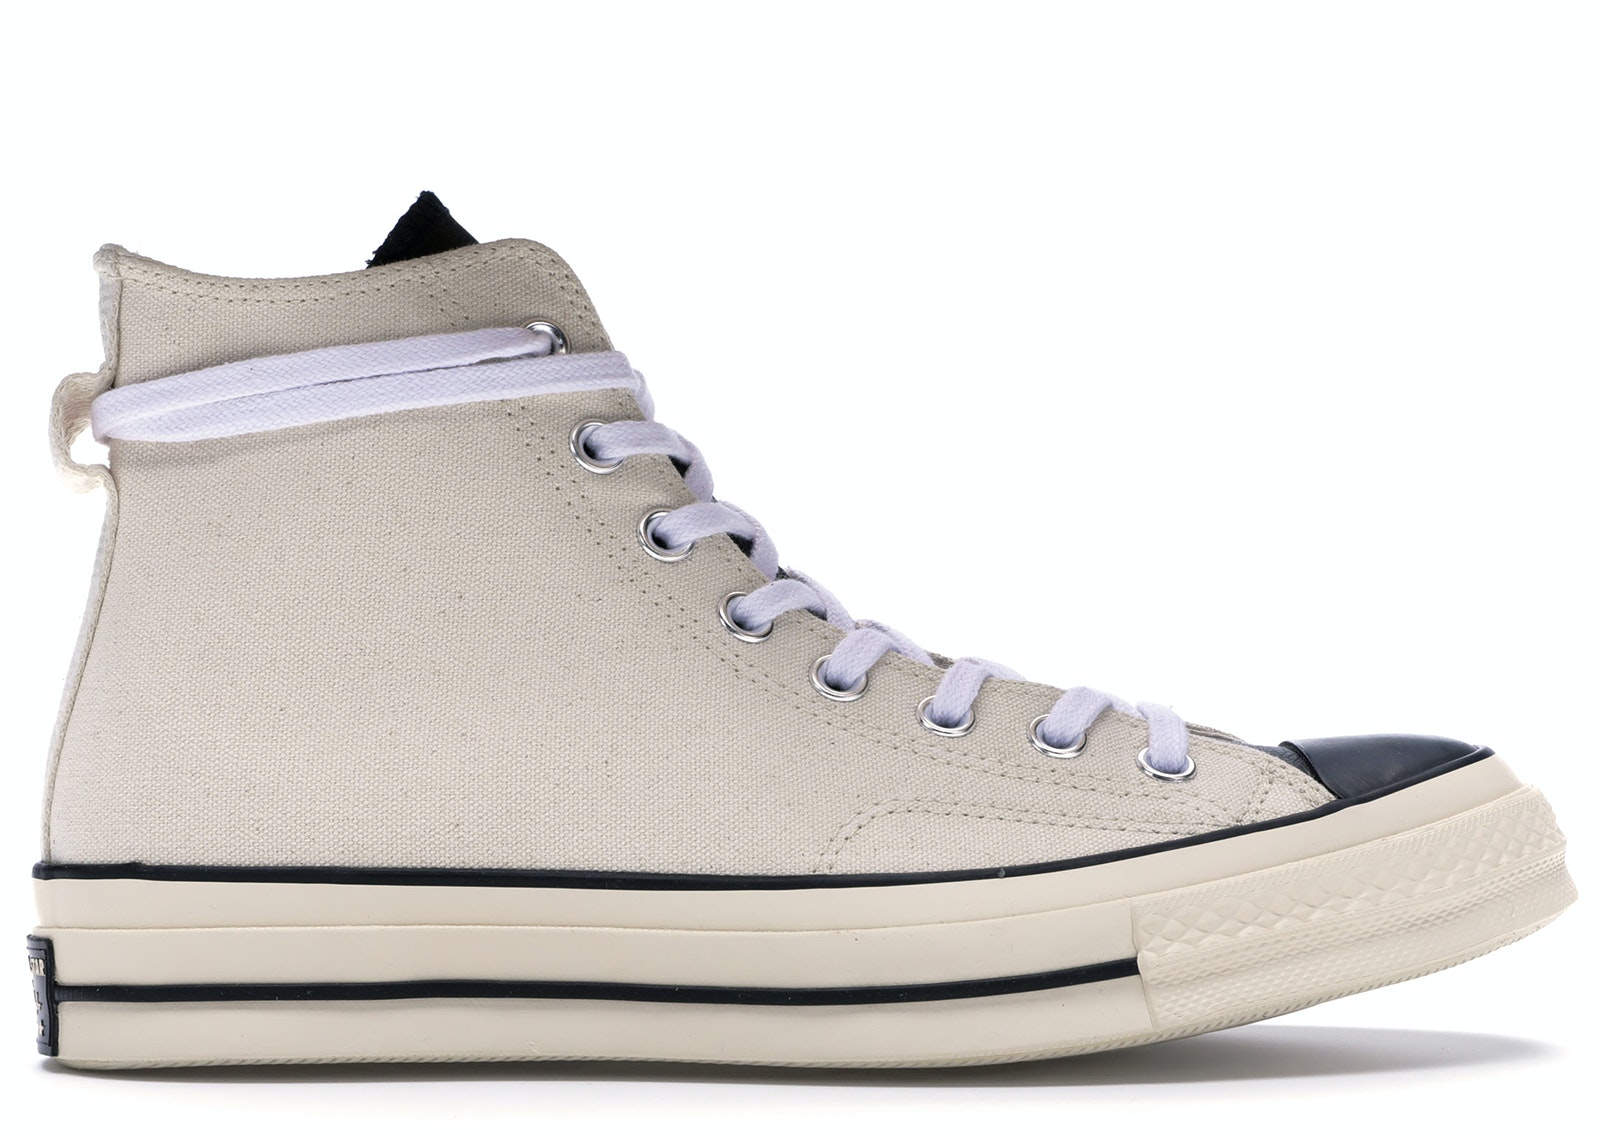 Converse Chuck Taylor All-Star 70s Hi Fear of God Cream